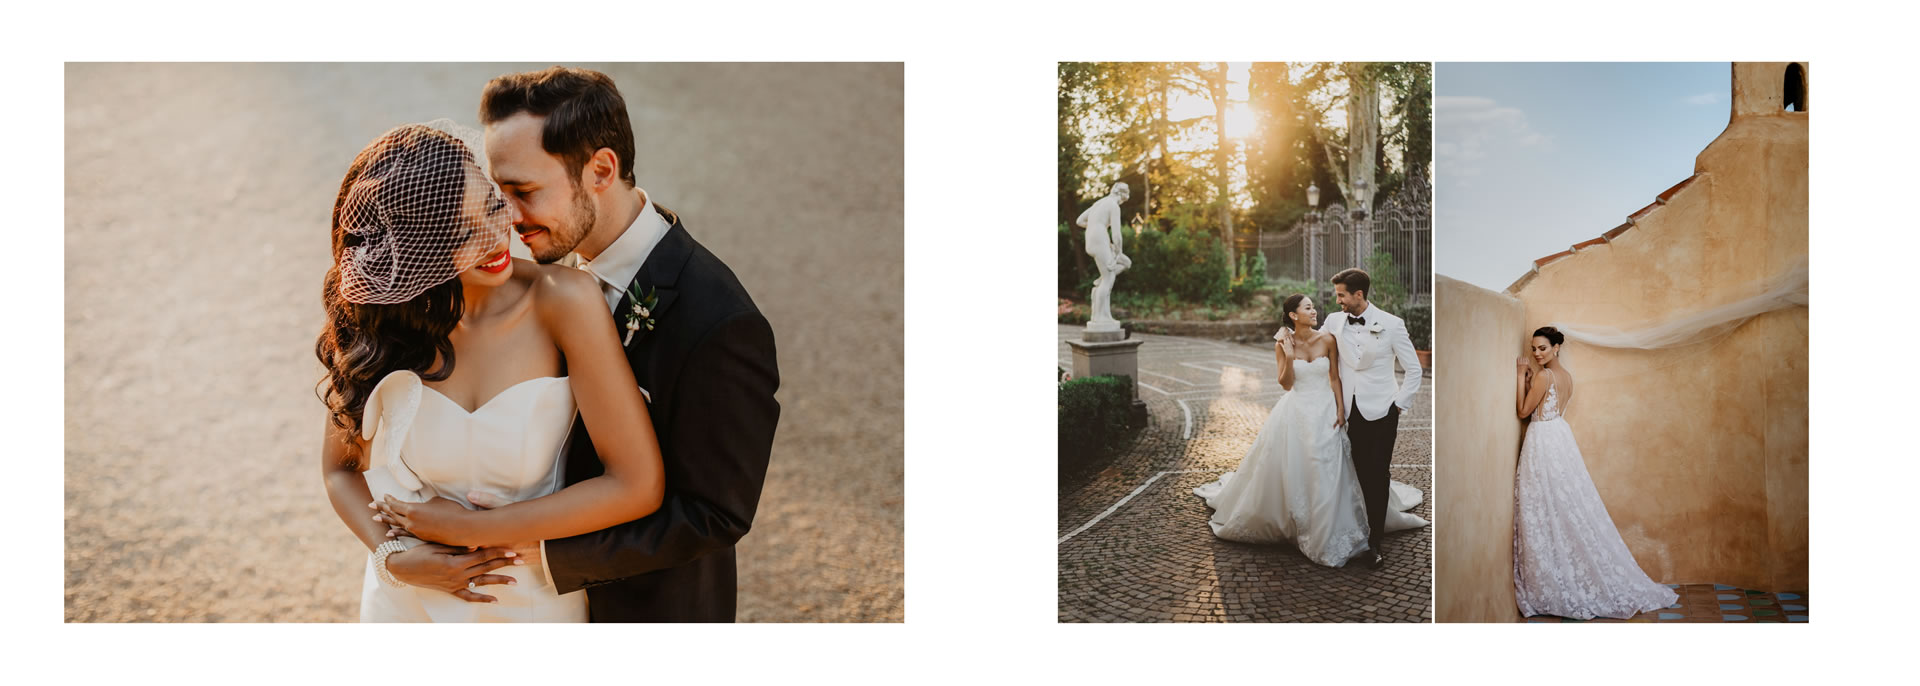 - 35 :: BEST OF 2018 WEDDING: A COLLECTION TO TELL ONE YEAR STORY :: Luxury wedding photography - 34 ::  - 35